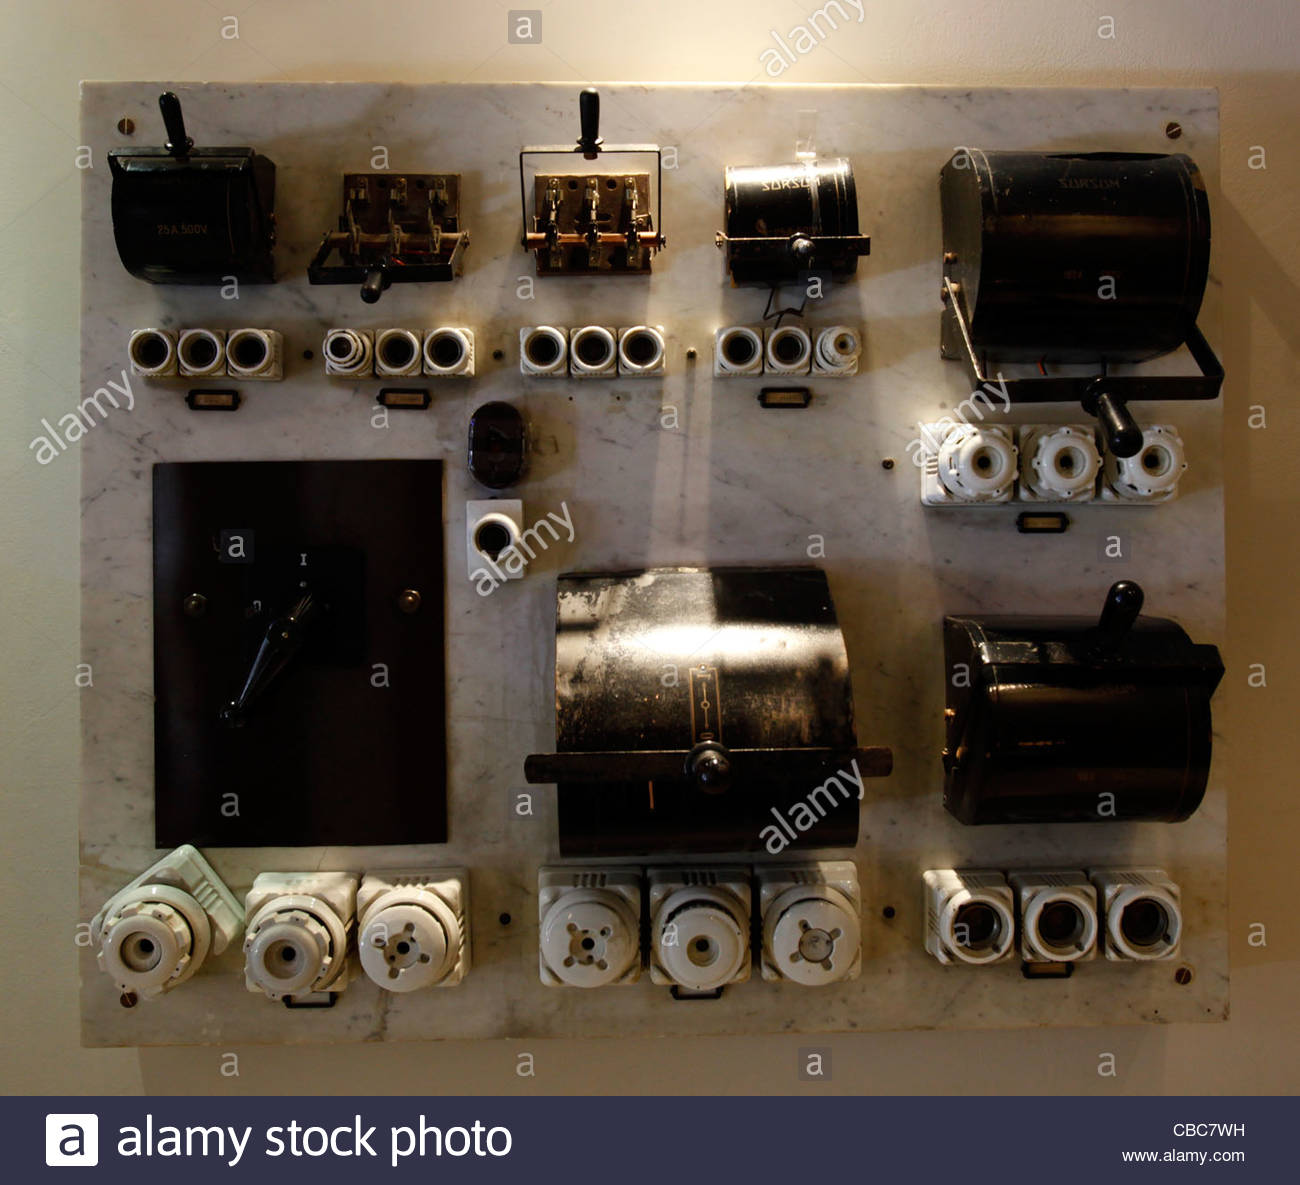 Ns 2886 Antique Fuse Box With Fuses Wiring Diagram